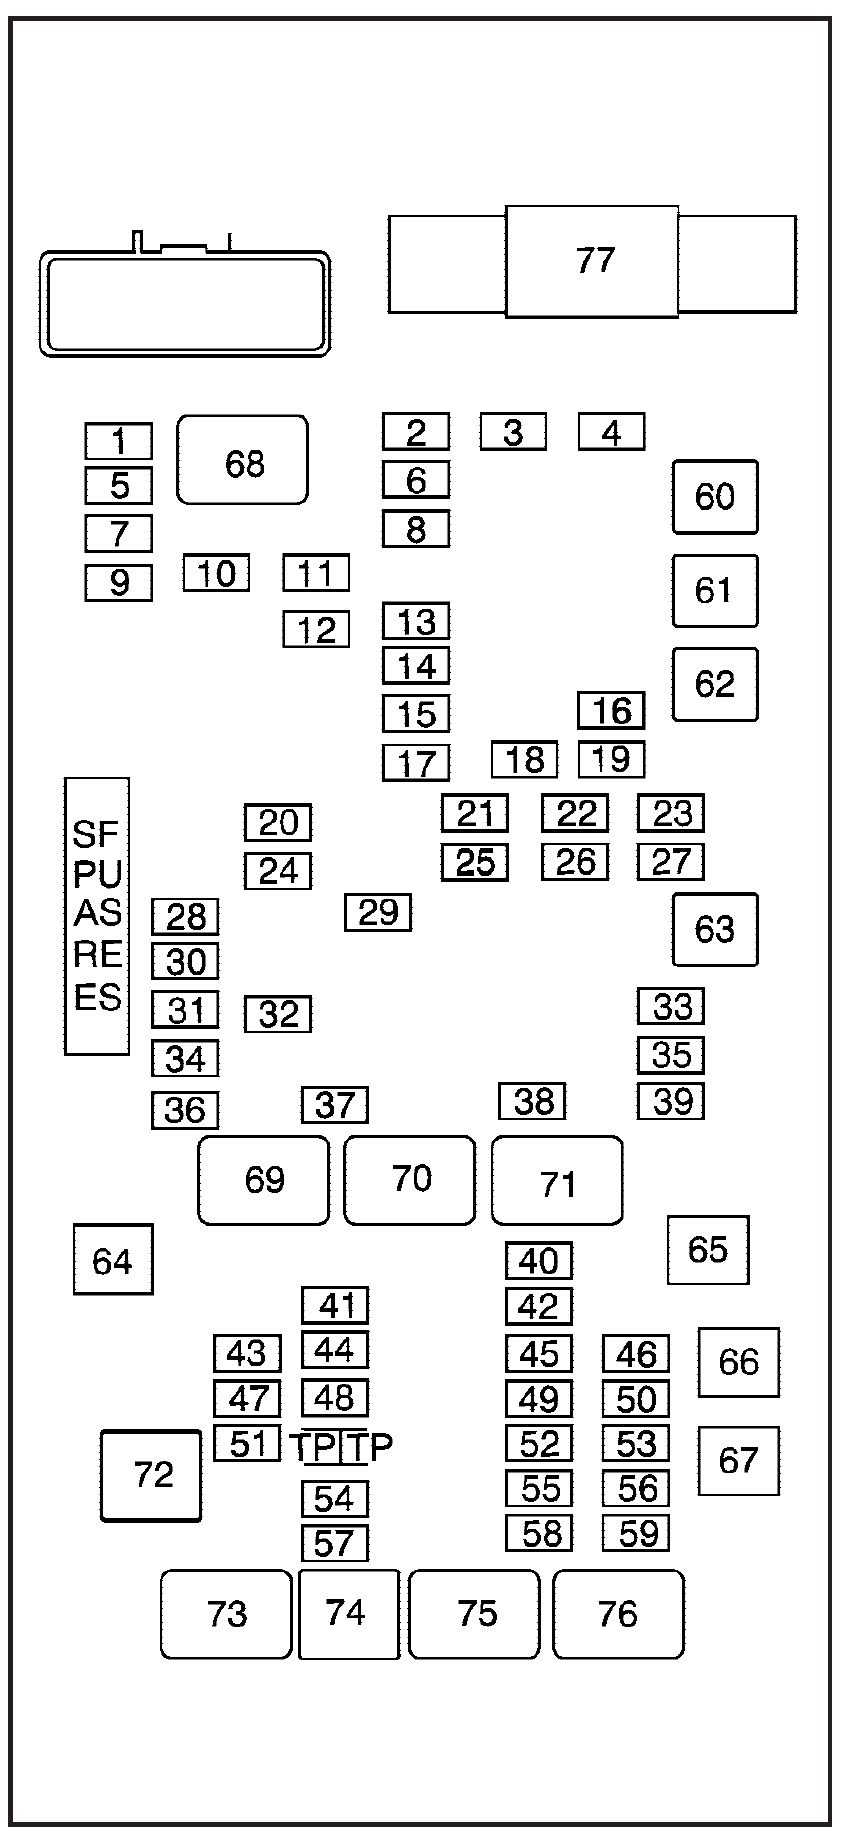 GMC savana fuse box engine compartment 2008 1974 chevy fuse box diagram trusted wiring diagrams